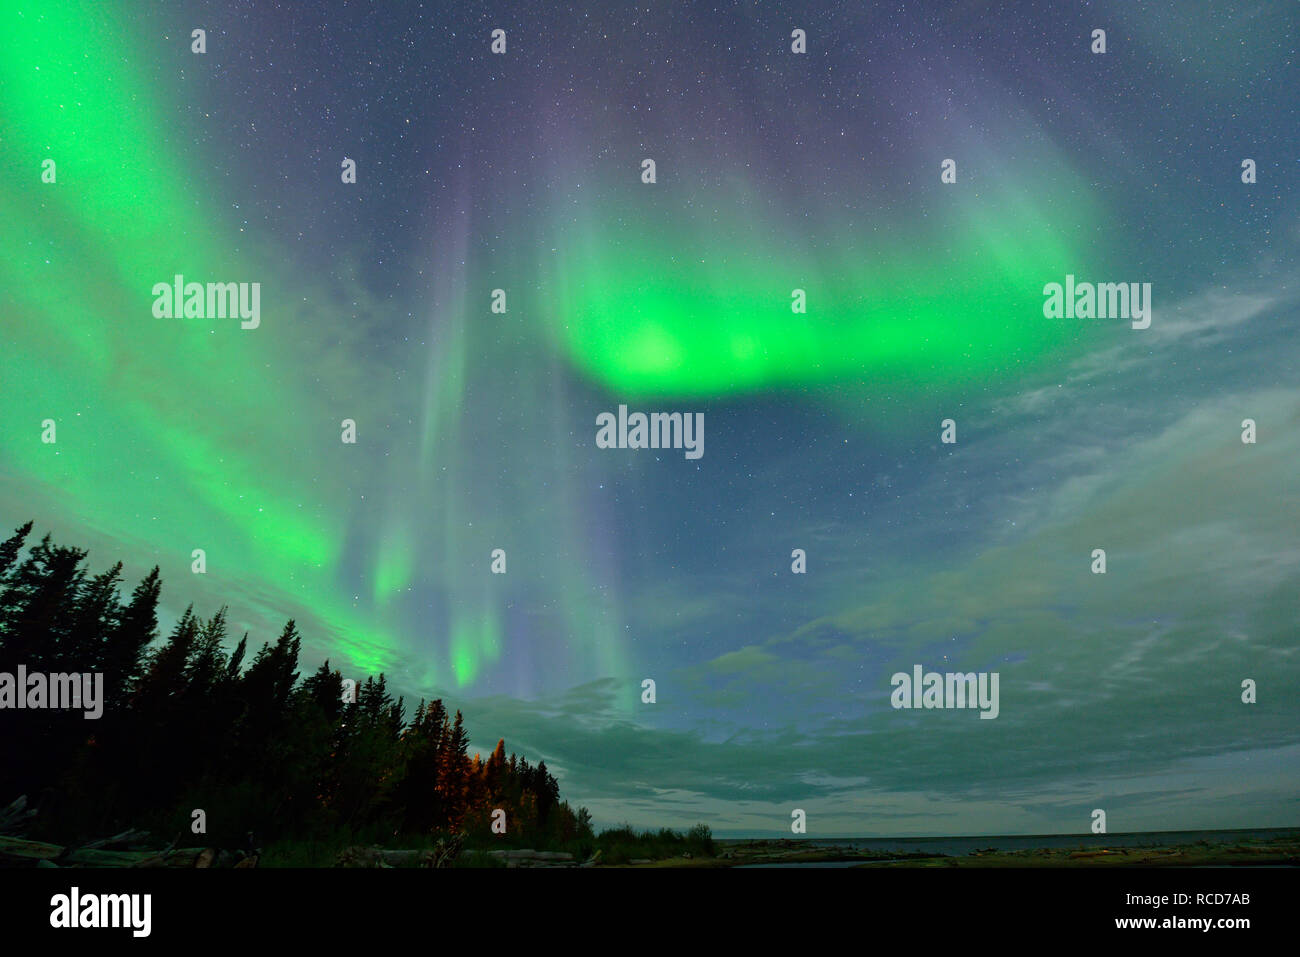 Aurora borealis (Northern Lights) over spruces near Great Slave Lake, Hay River, Northwest Territories, Canada - Stock Image